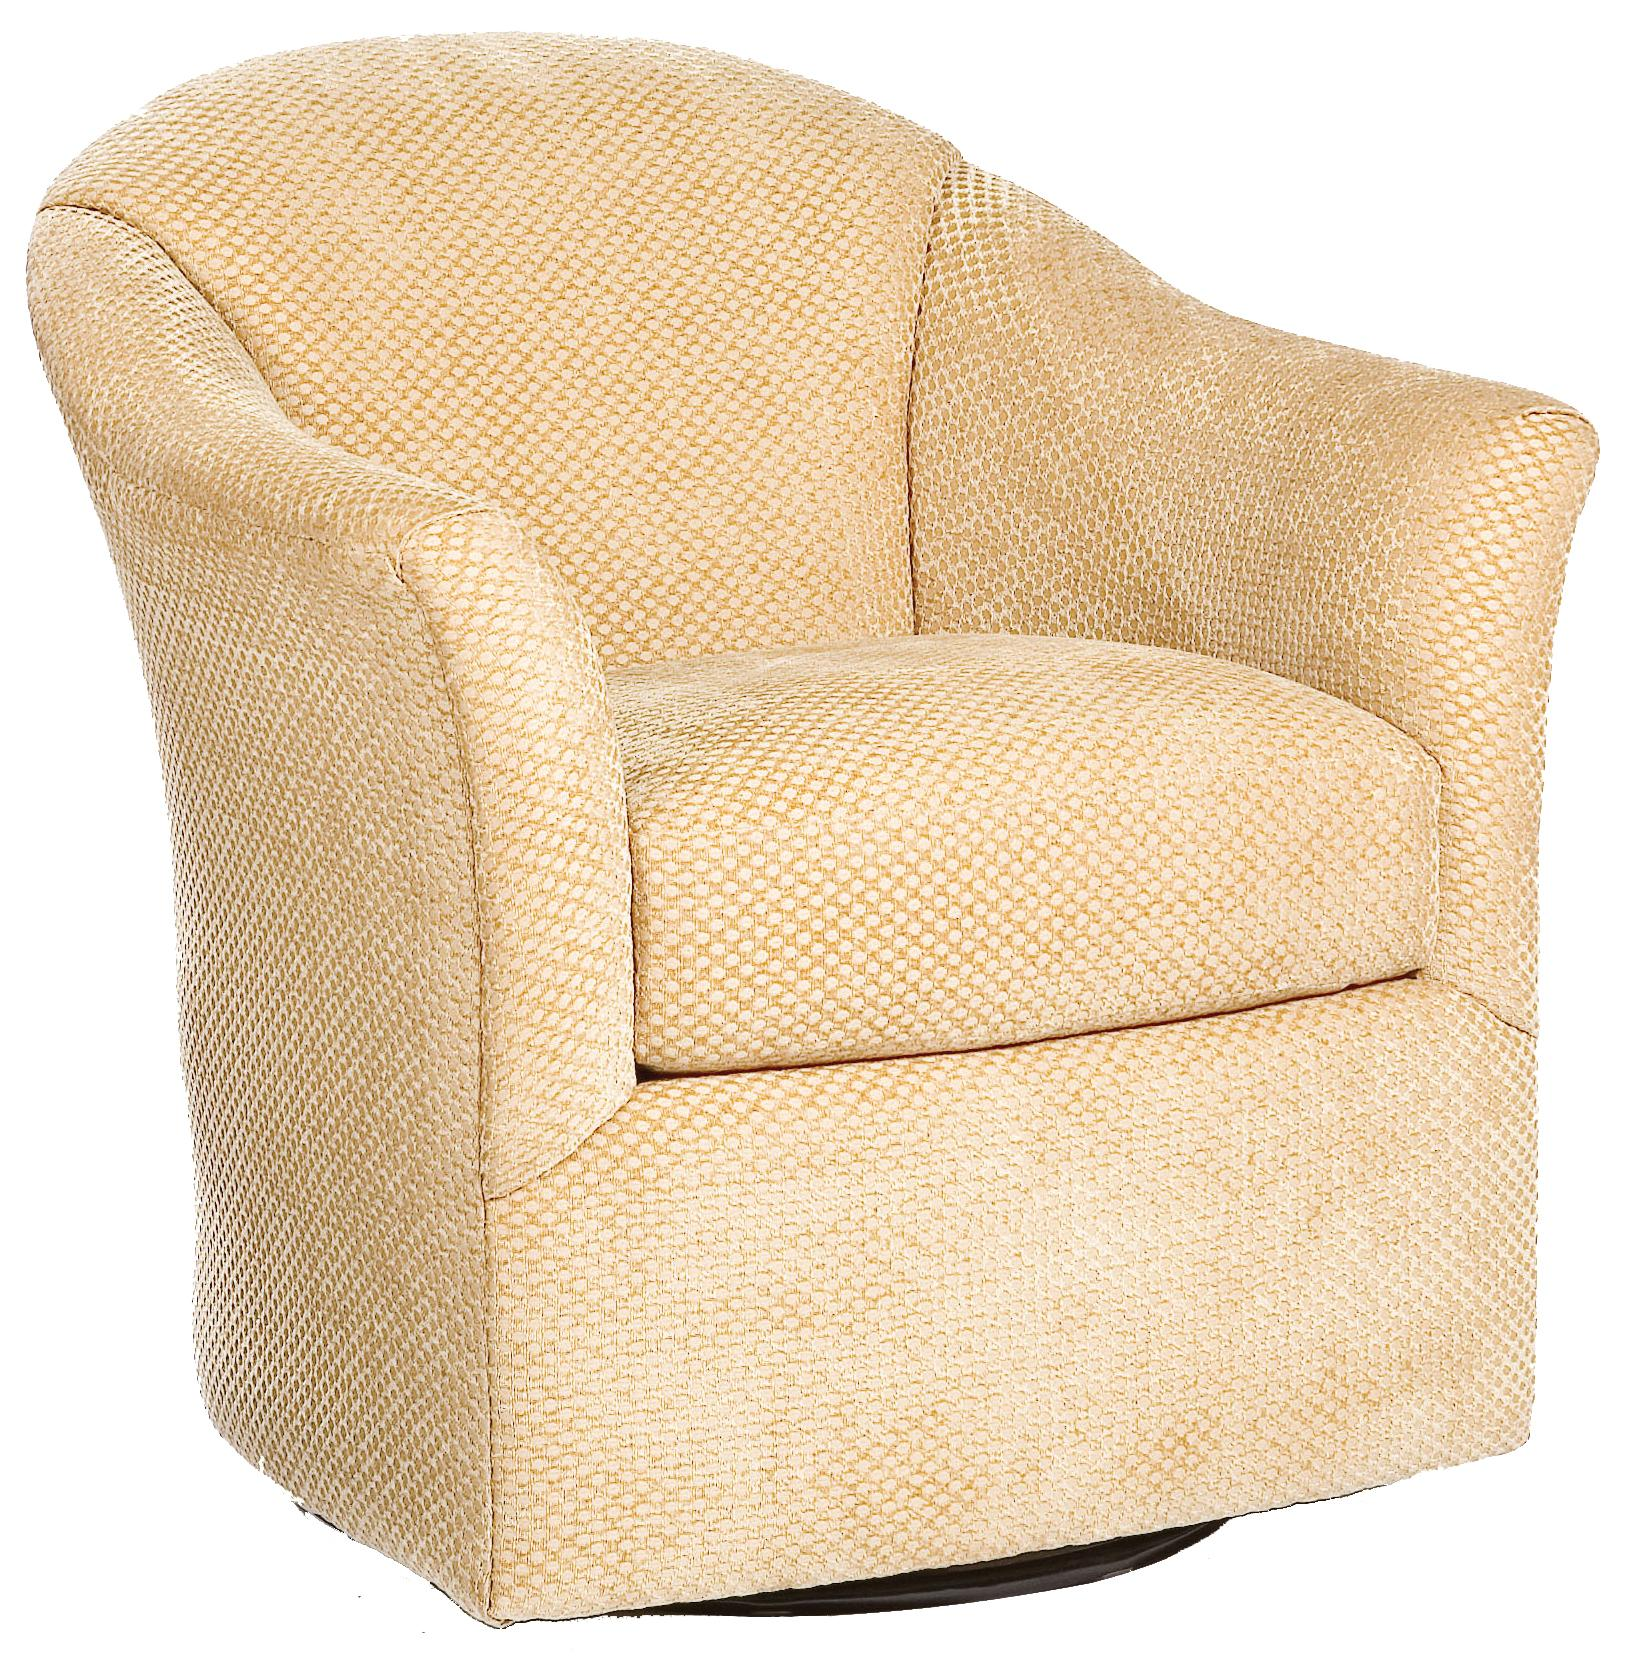 Fairfield Chairs Swivel Chair - Item Number: 6101-31